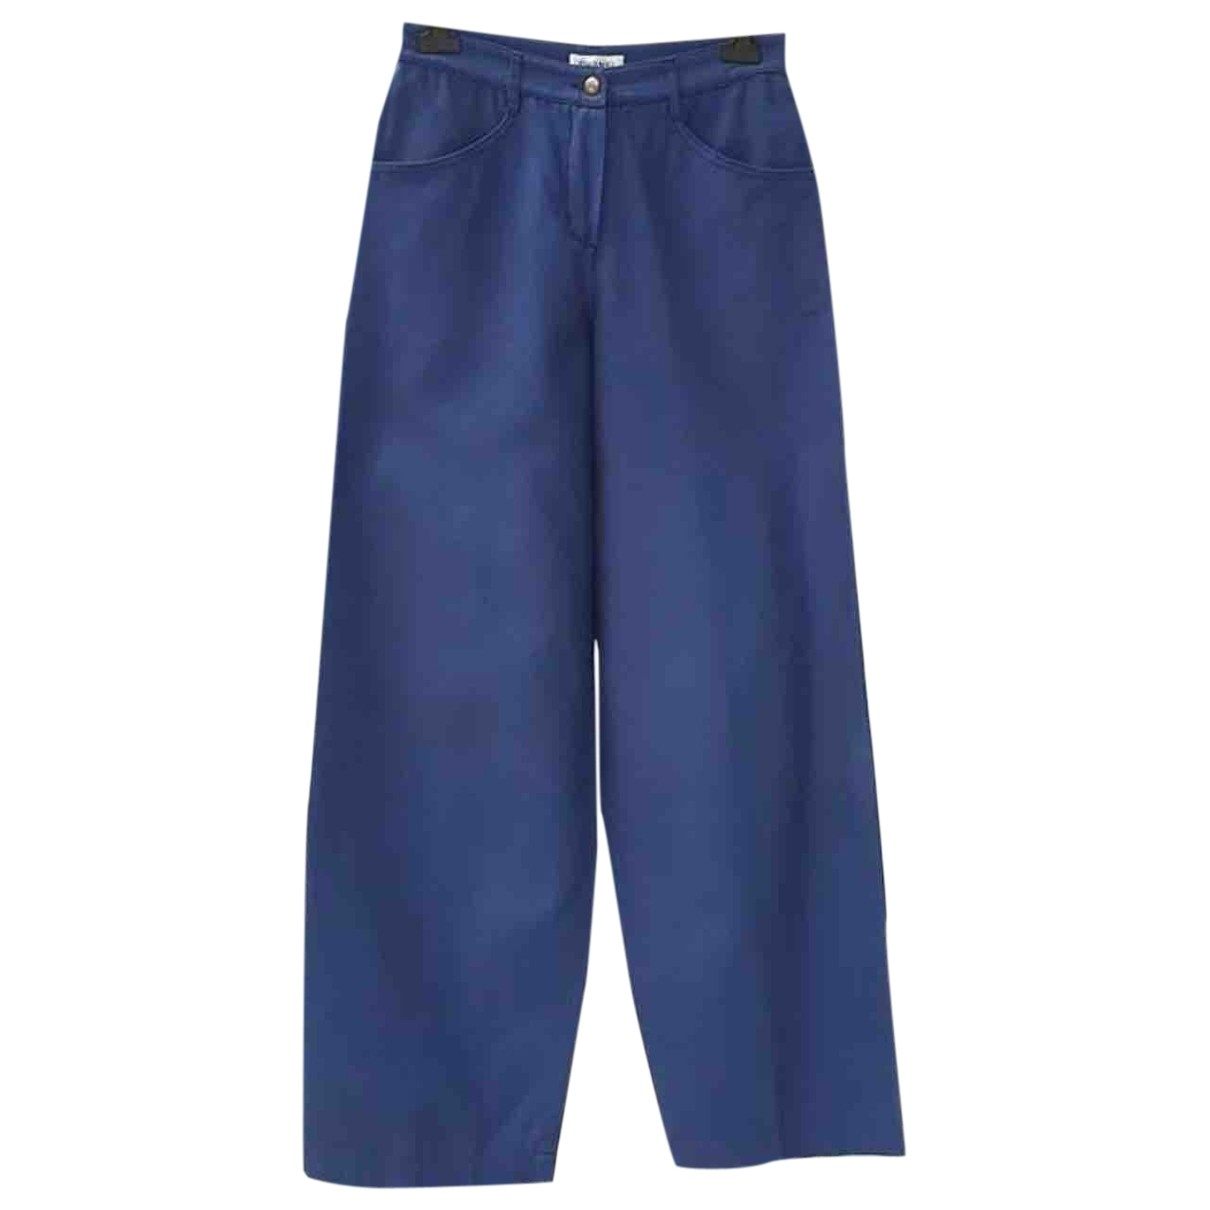 Chanel \N Blue Cotton Jeans for Women 40 FR